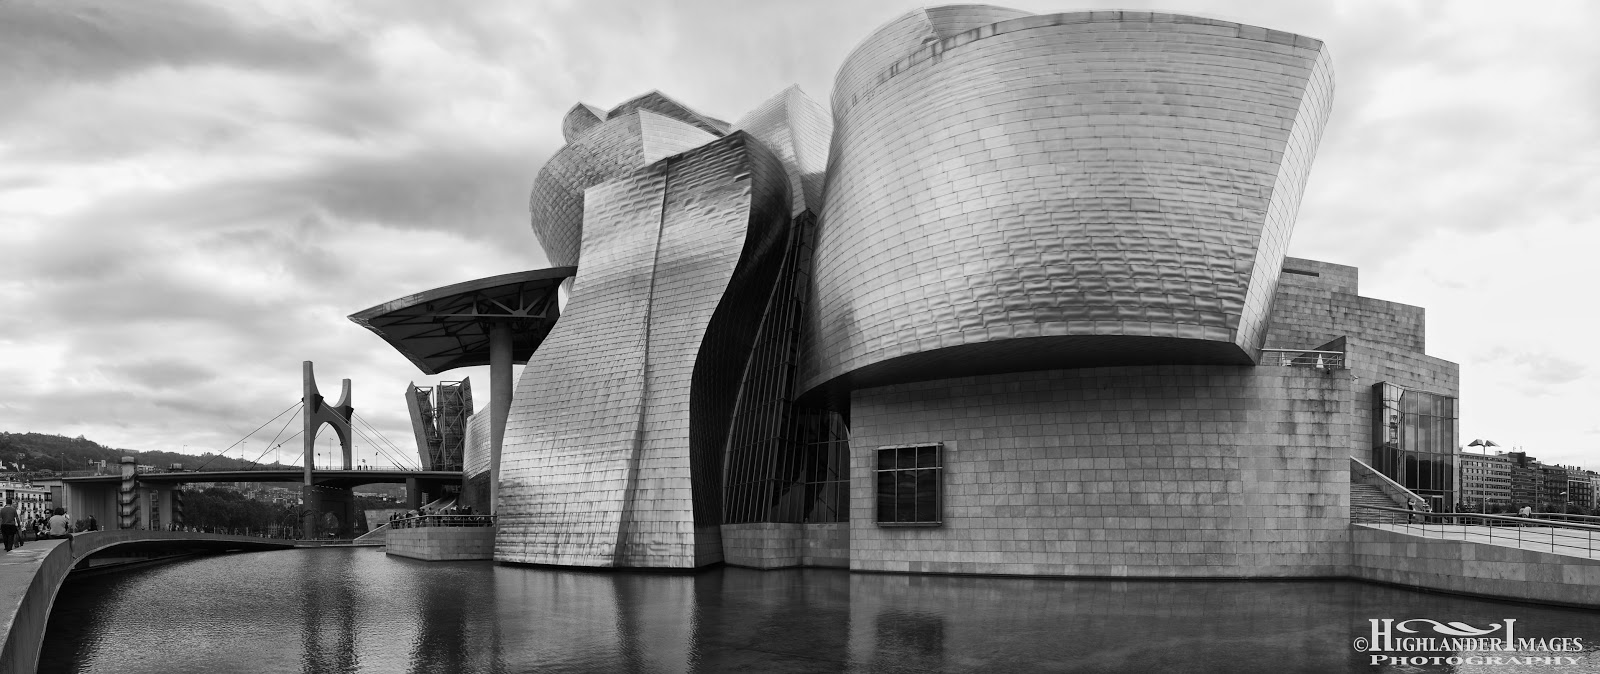 A Blogography of Photography: Guggenheim Museum Bilbao